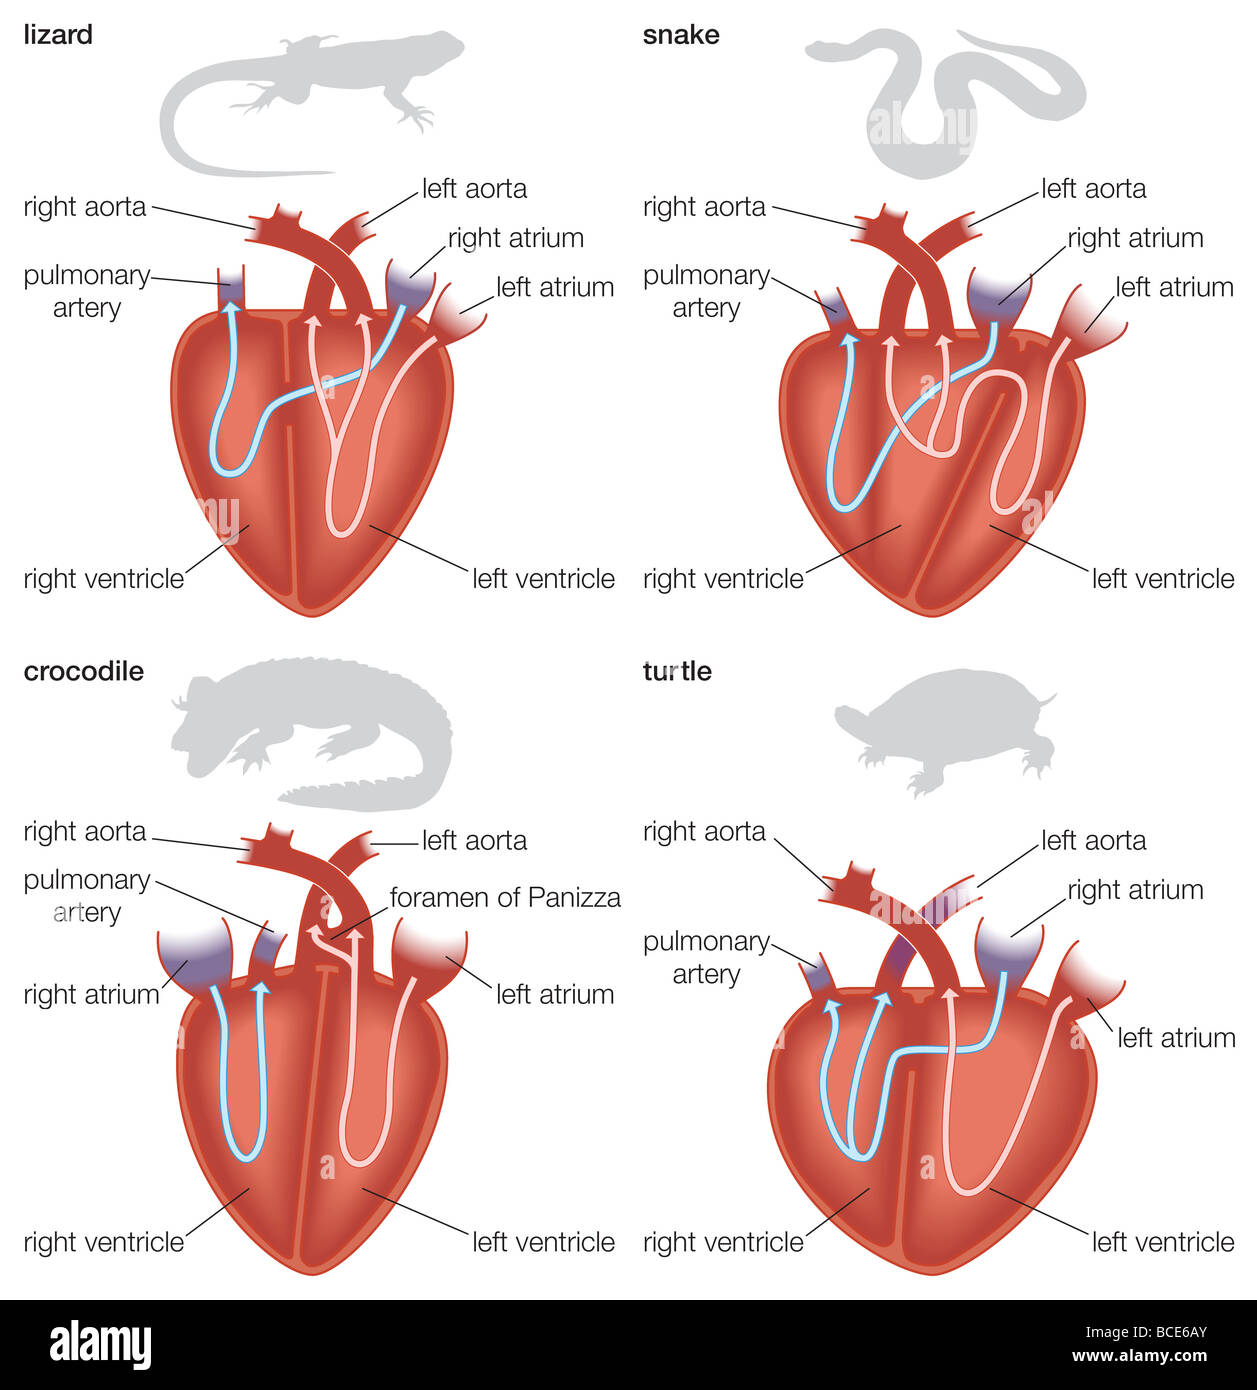 Types of reptilian hearts: lizard, snake, crocodile, and turtle ...